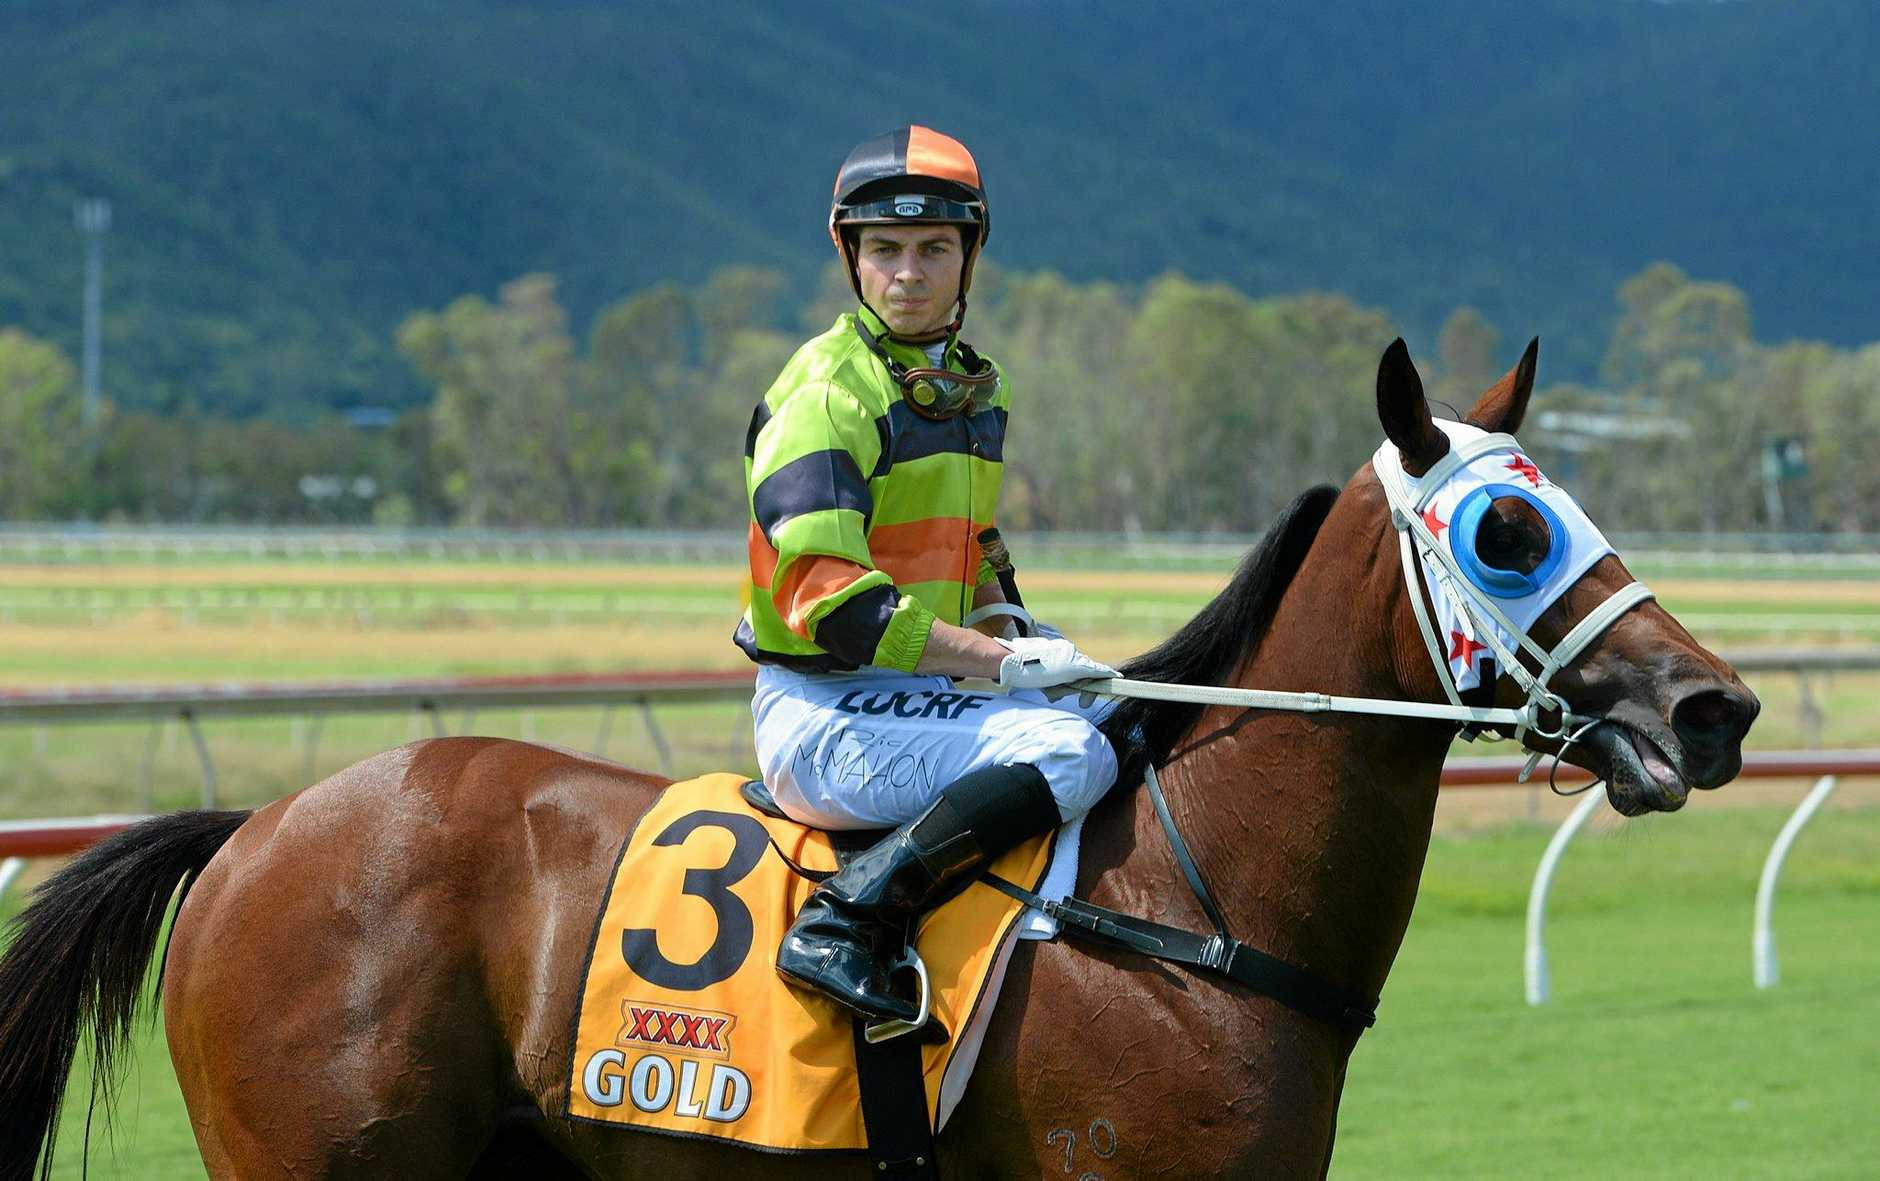 Brisbane jockey Ric McMahon will ride Tumbler in the $15,000 Kevin Nipperess Handicap (1000m) at Ballina today.